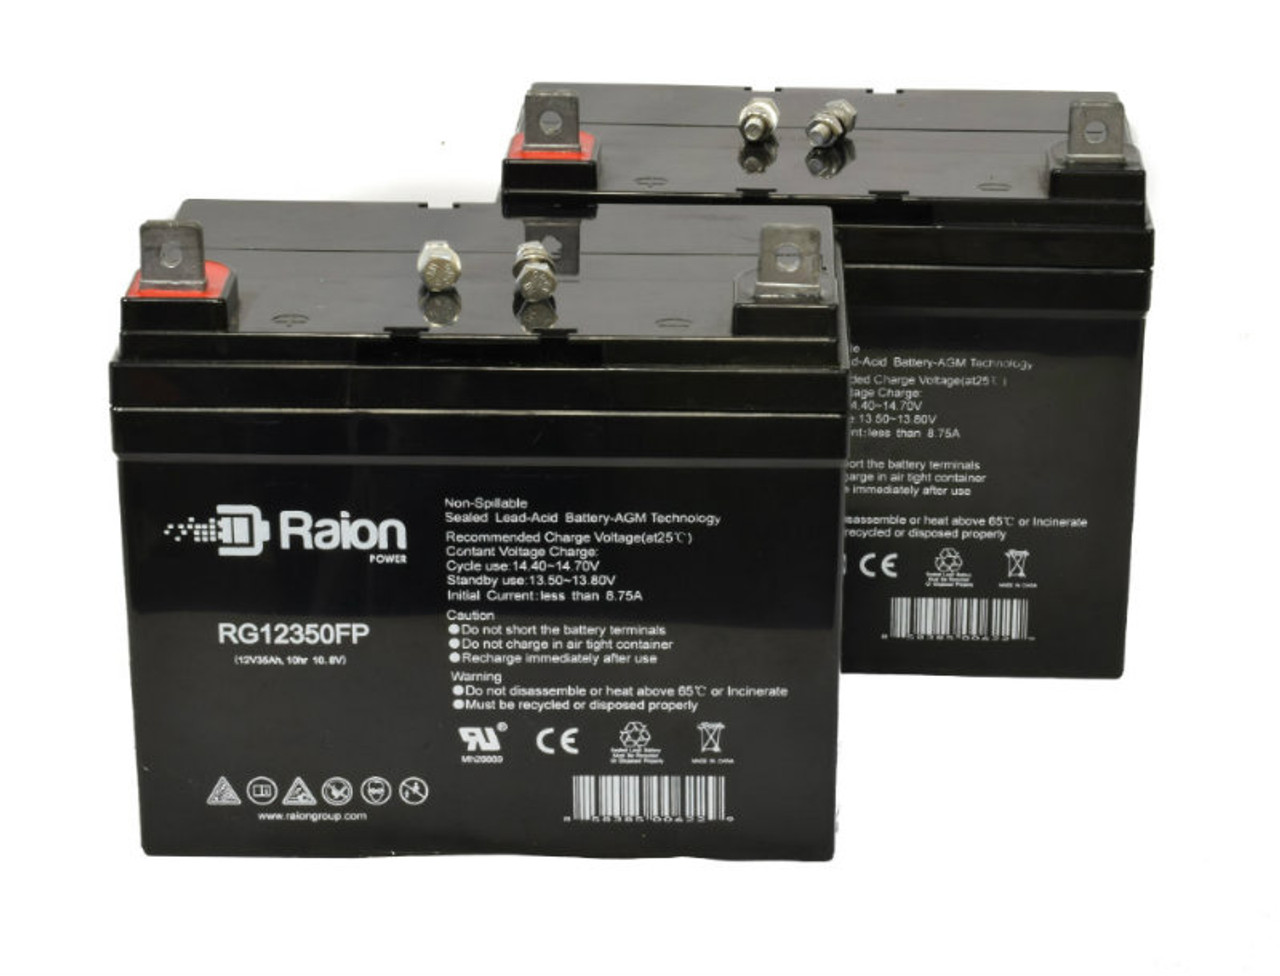 Raion Power RG12350FP Replacement Wheelchair Battery For Karma Medical Products KS-747 (2 Pack)